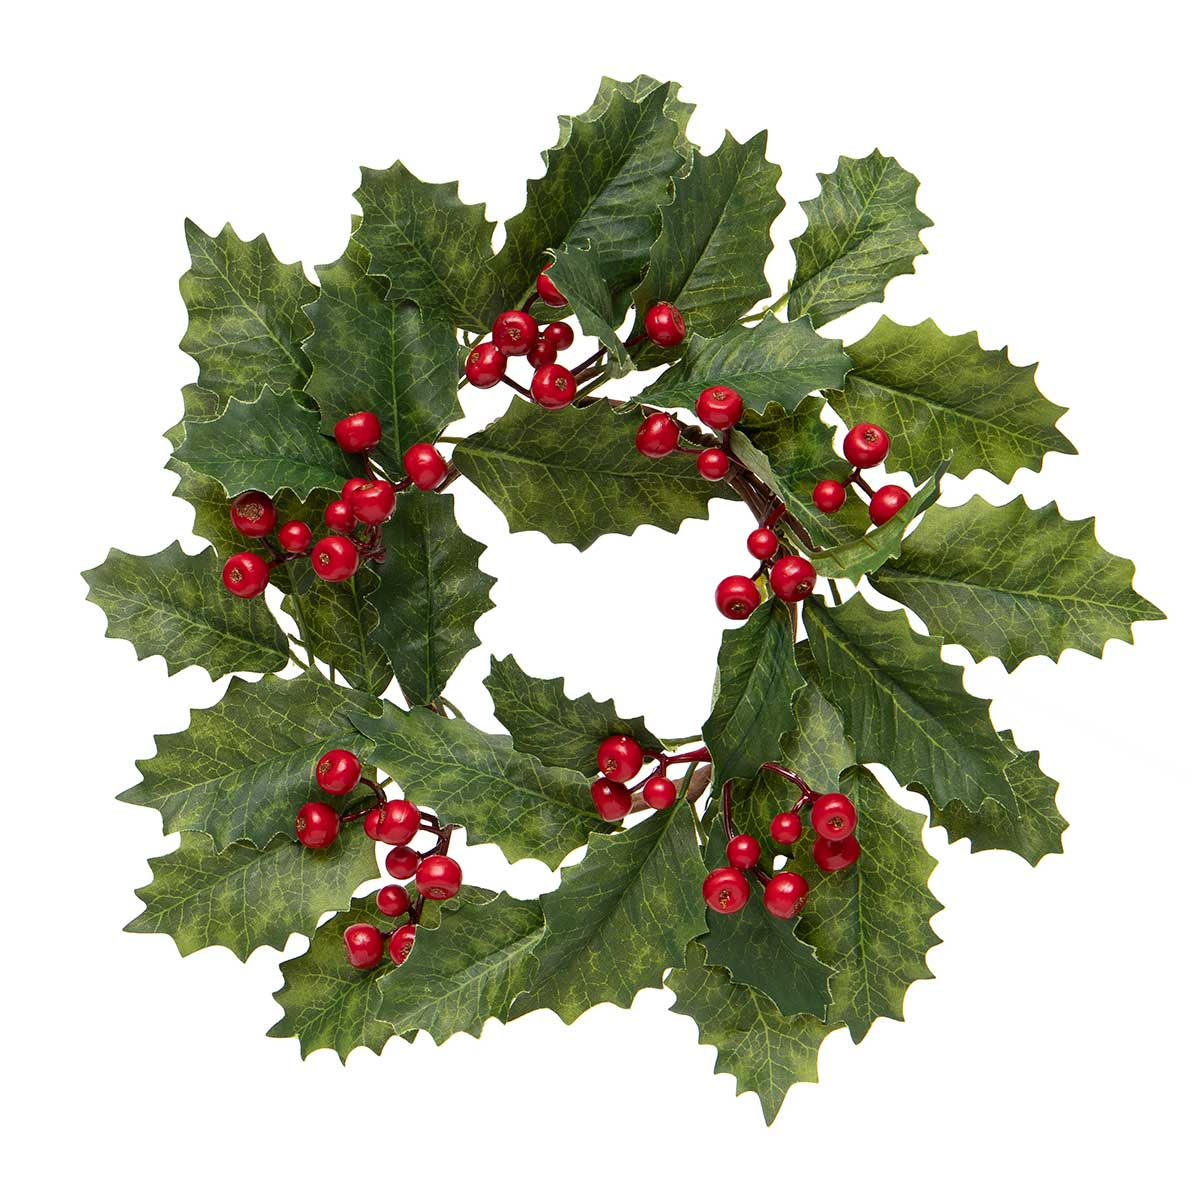 HOLLY BERRY CANDLERING/MINI WREATH